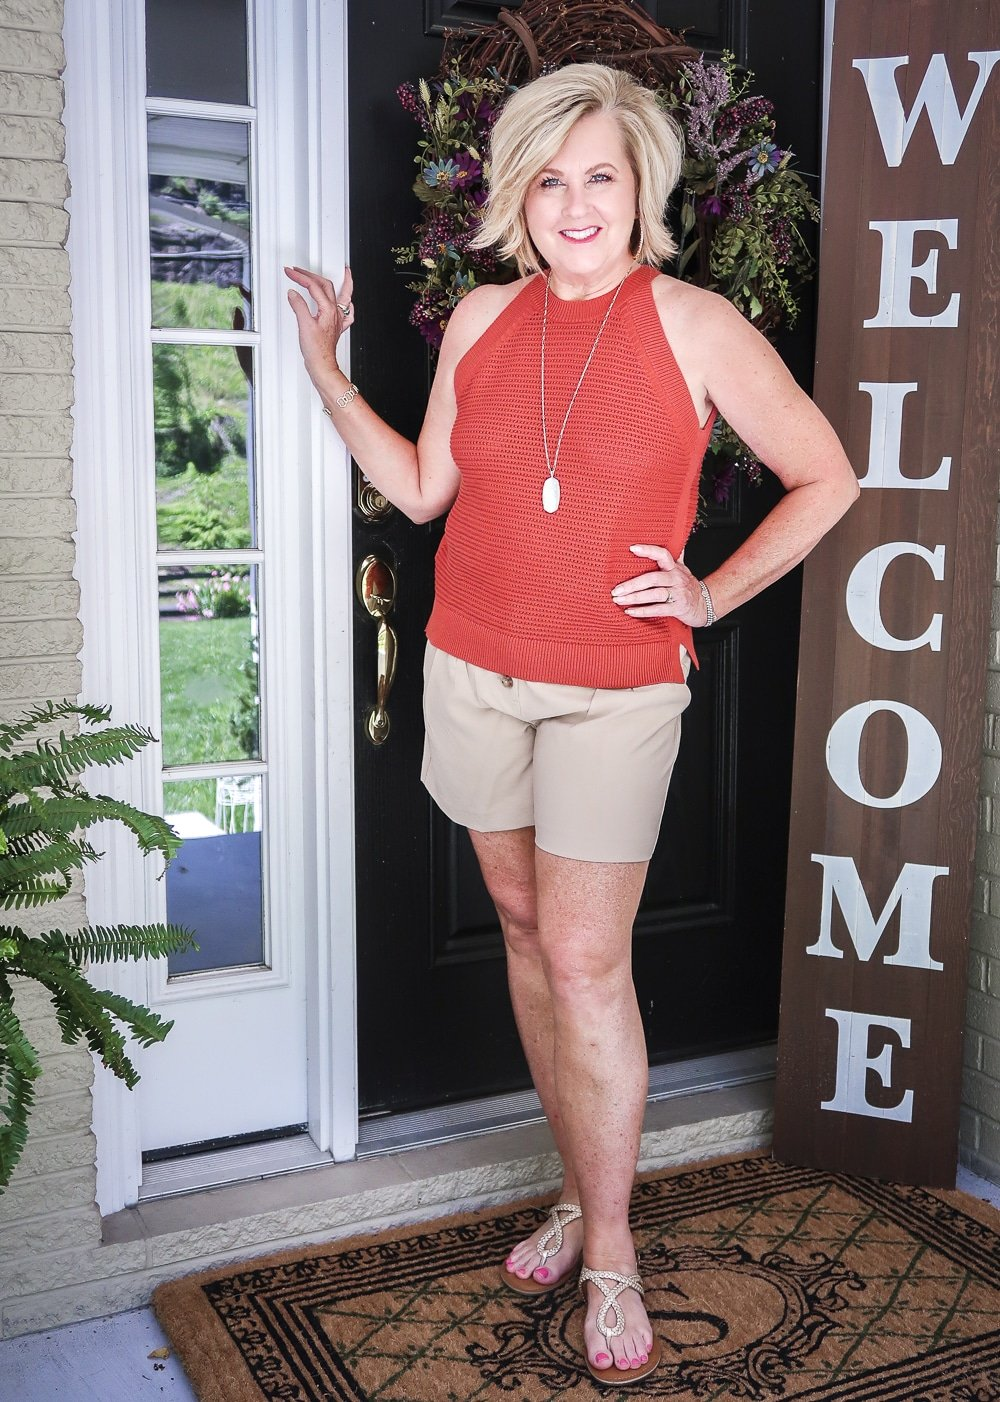 Fashion Blogger 50 Is Not Old is wearing a red clay crochet halter top, gold jewelry, beige linen shorts, and gold sandals